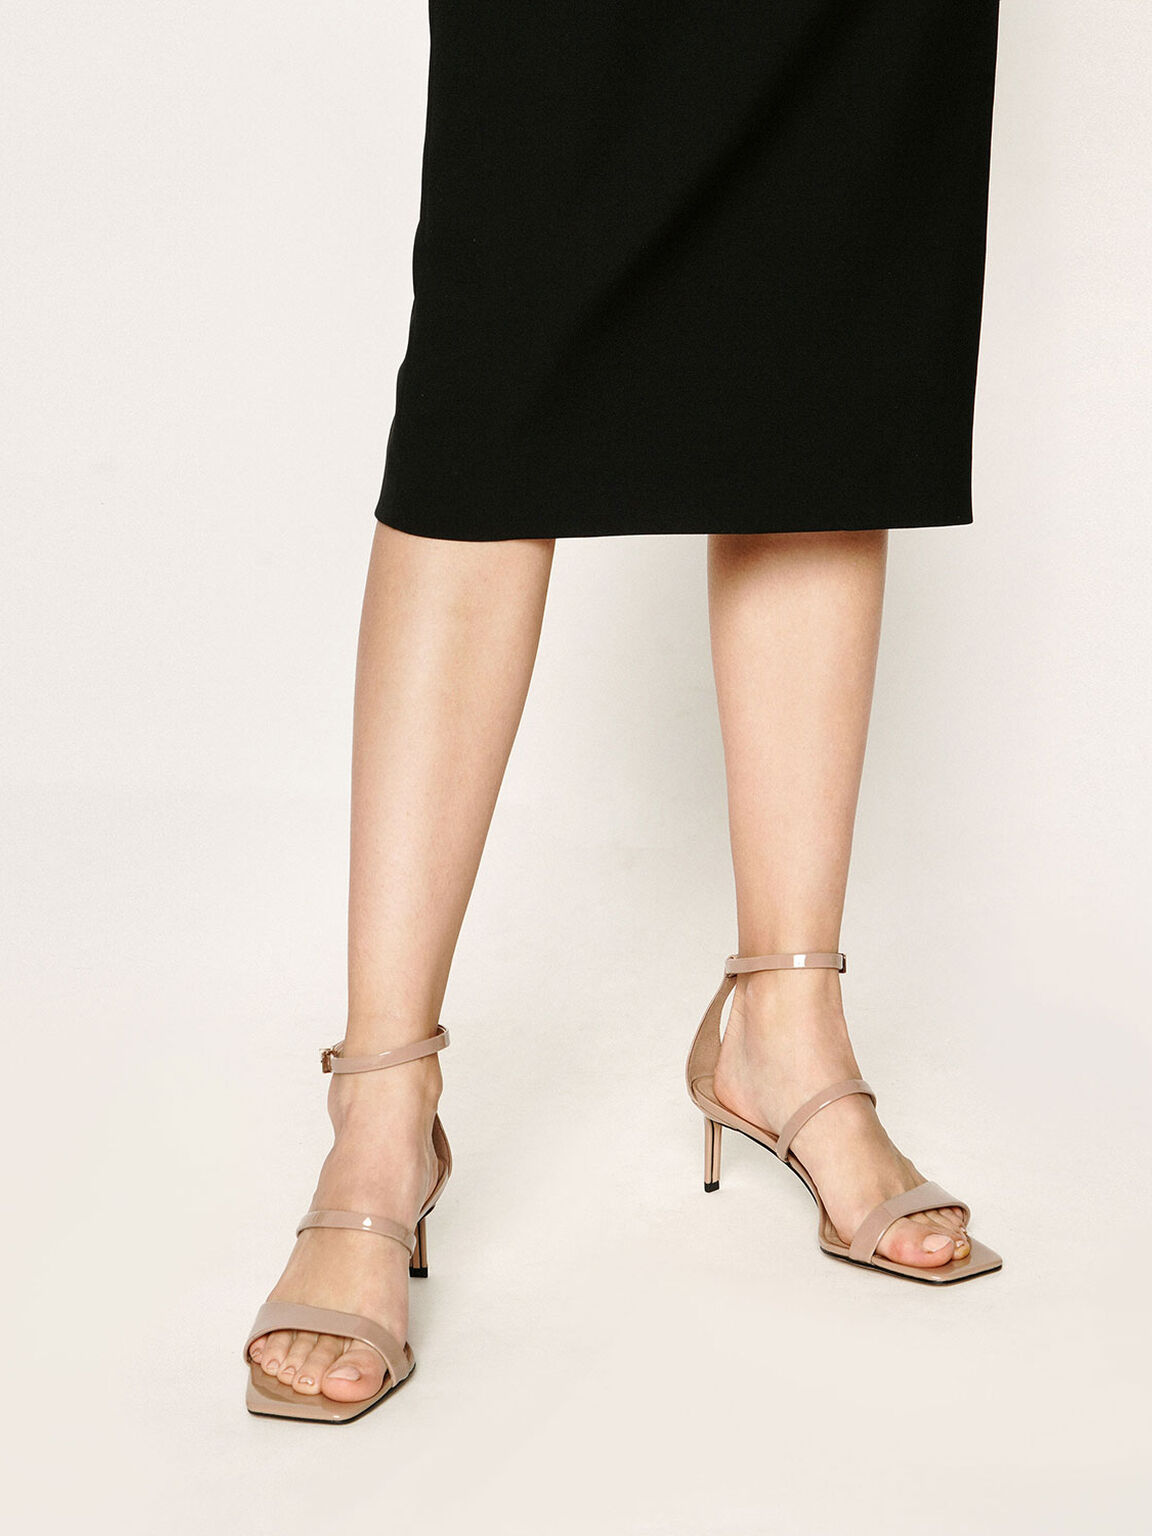 Patent Leather Strappy Heeled Sandals, Nude, hi-res